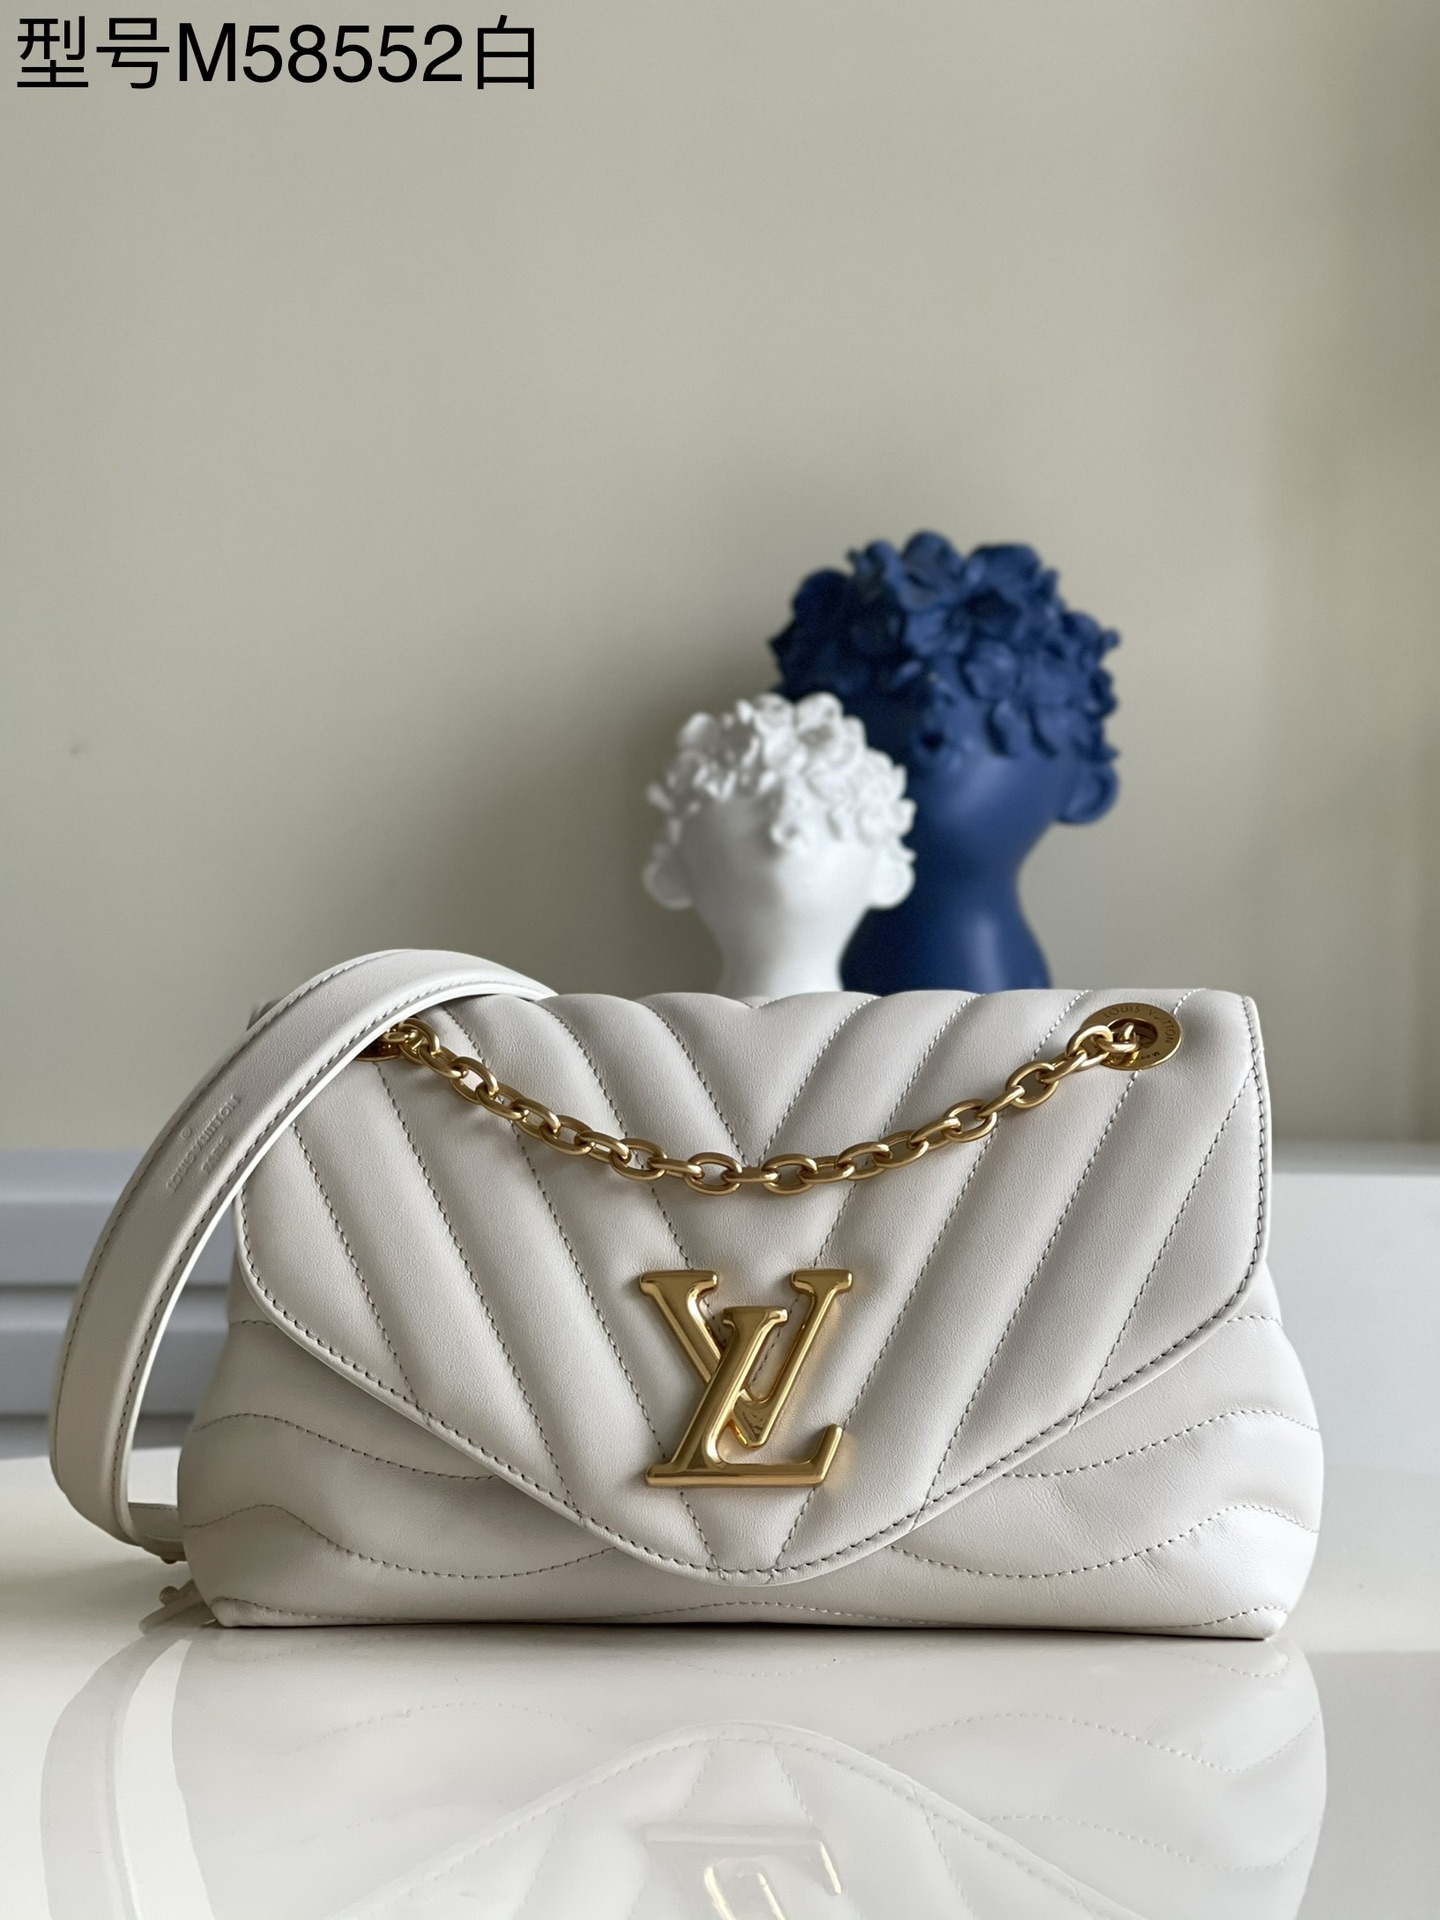 AAA Replica Louis Vuitton M58553 LV New Wave Chain Bag Smooth Cowhide Leather Ivoire